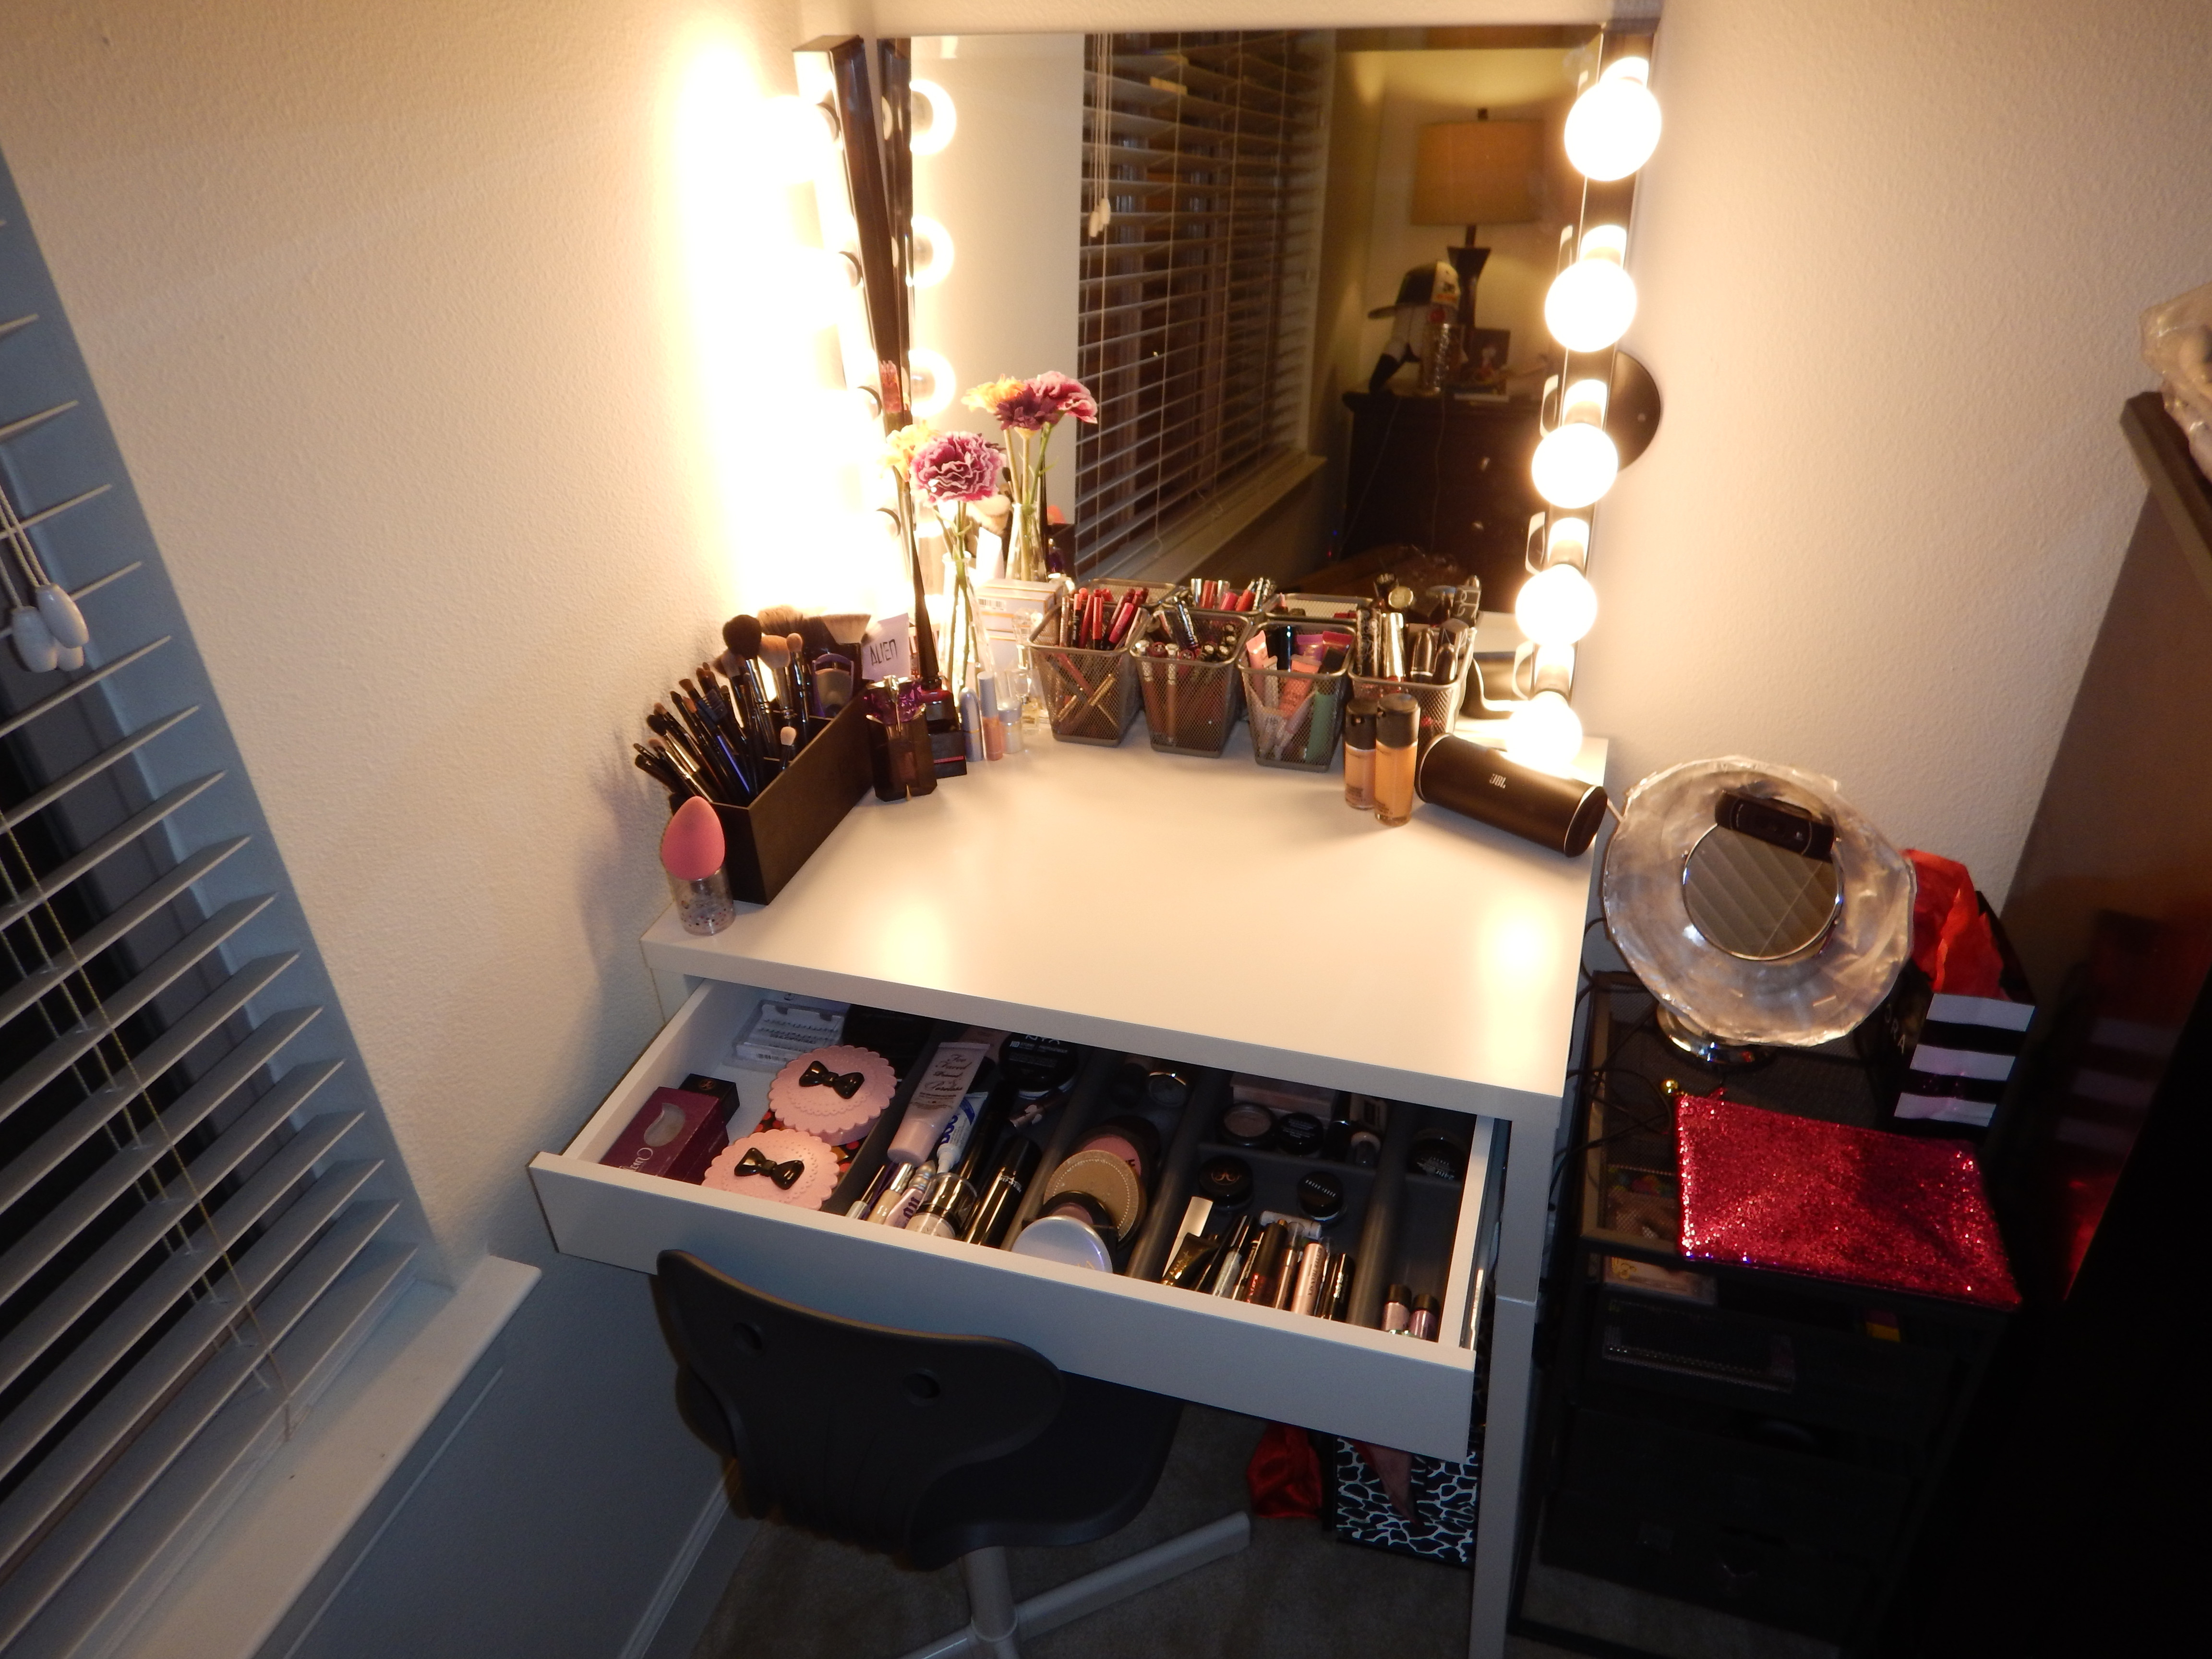 Best ideas about DIY Makeup Vanity Lighting . Save or Pin DIY Hollywood Style Makeup Vanity from IKEA Now.